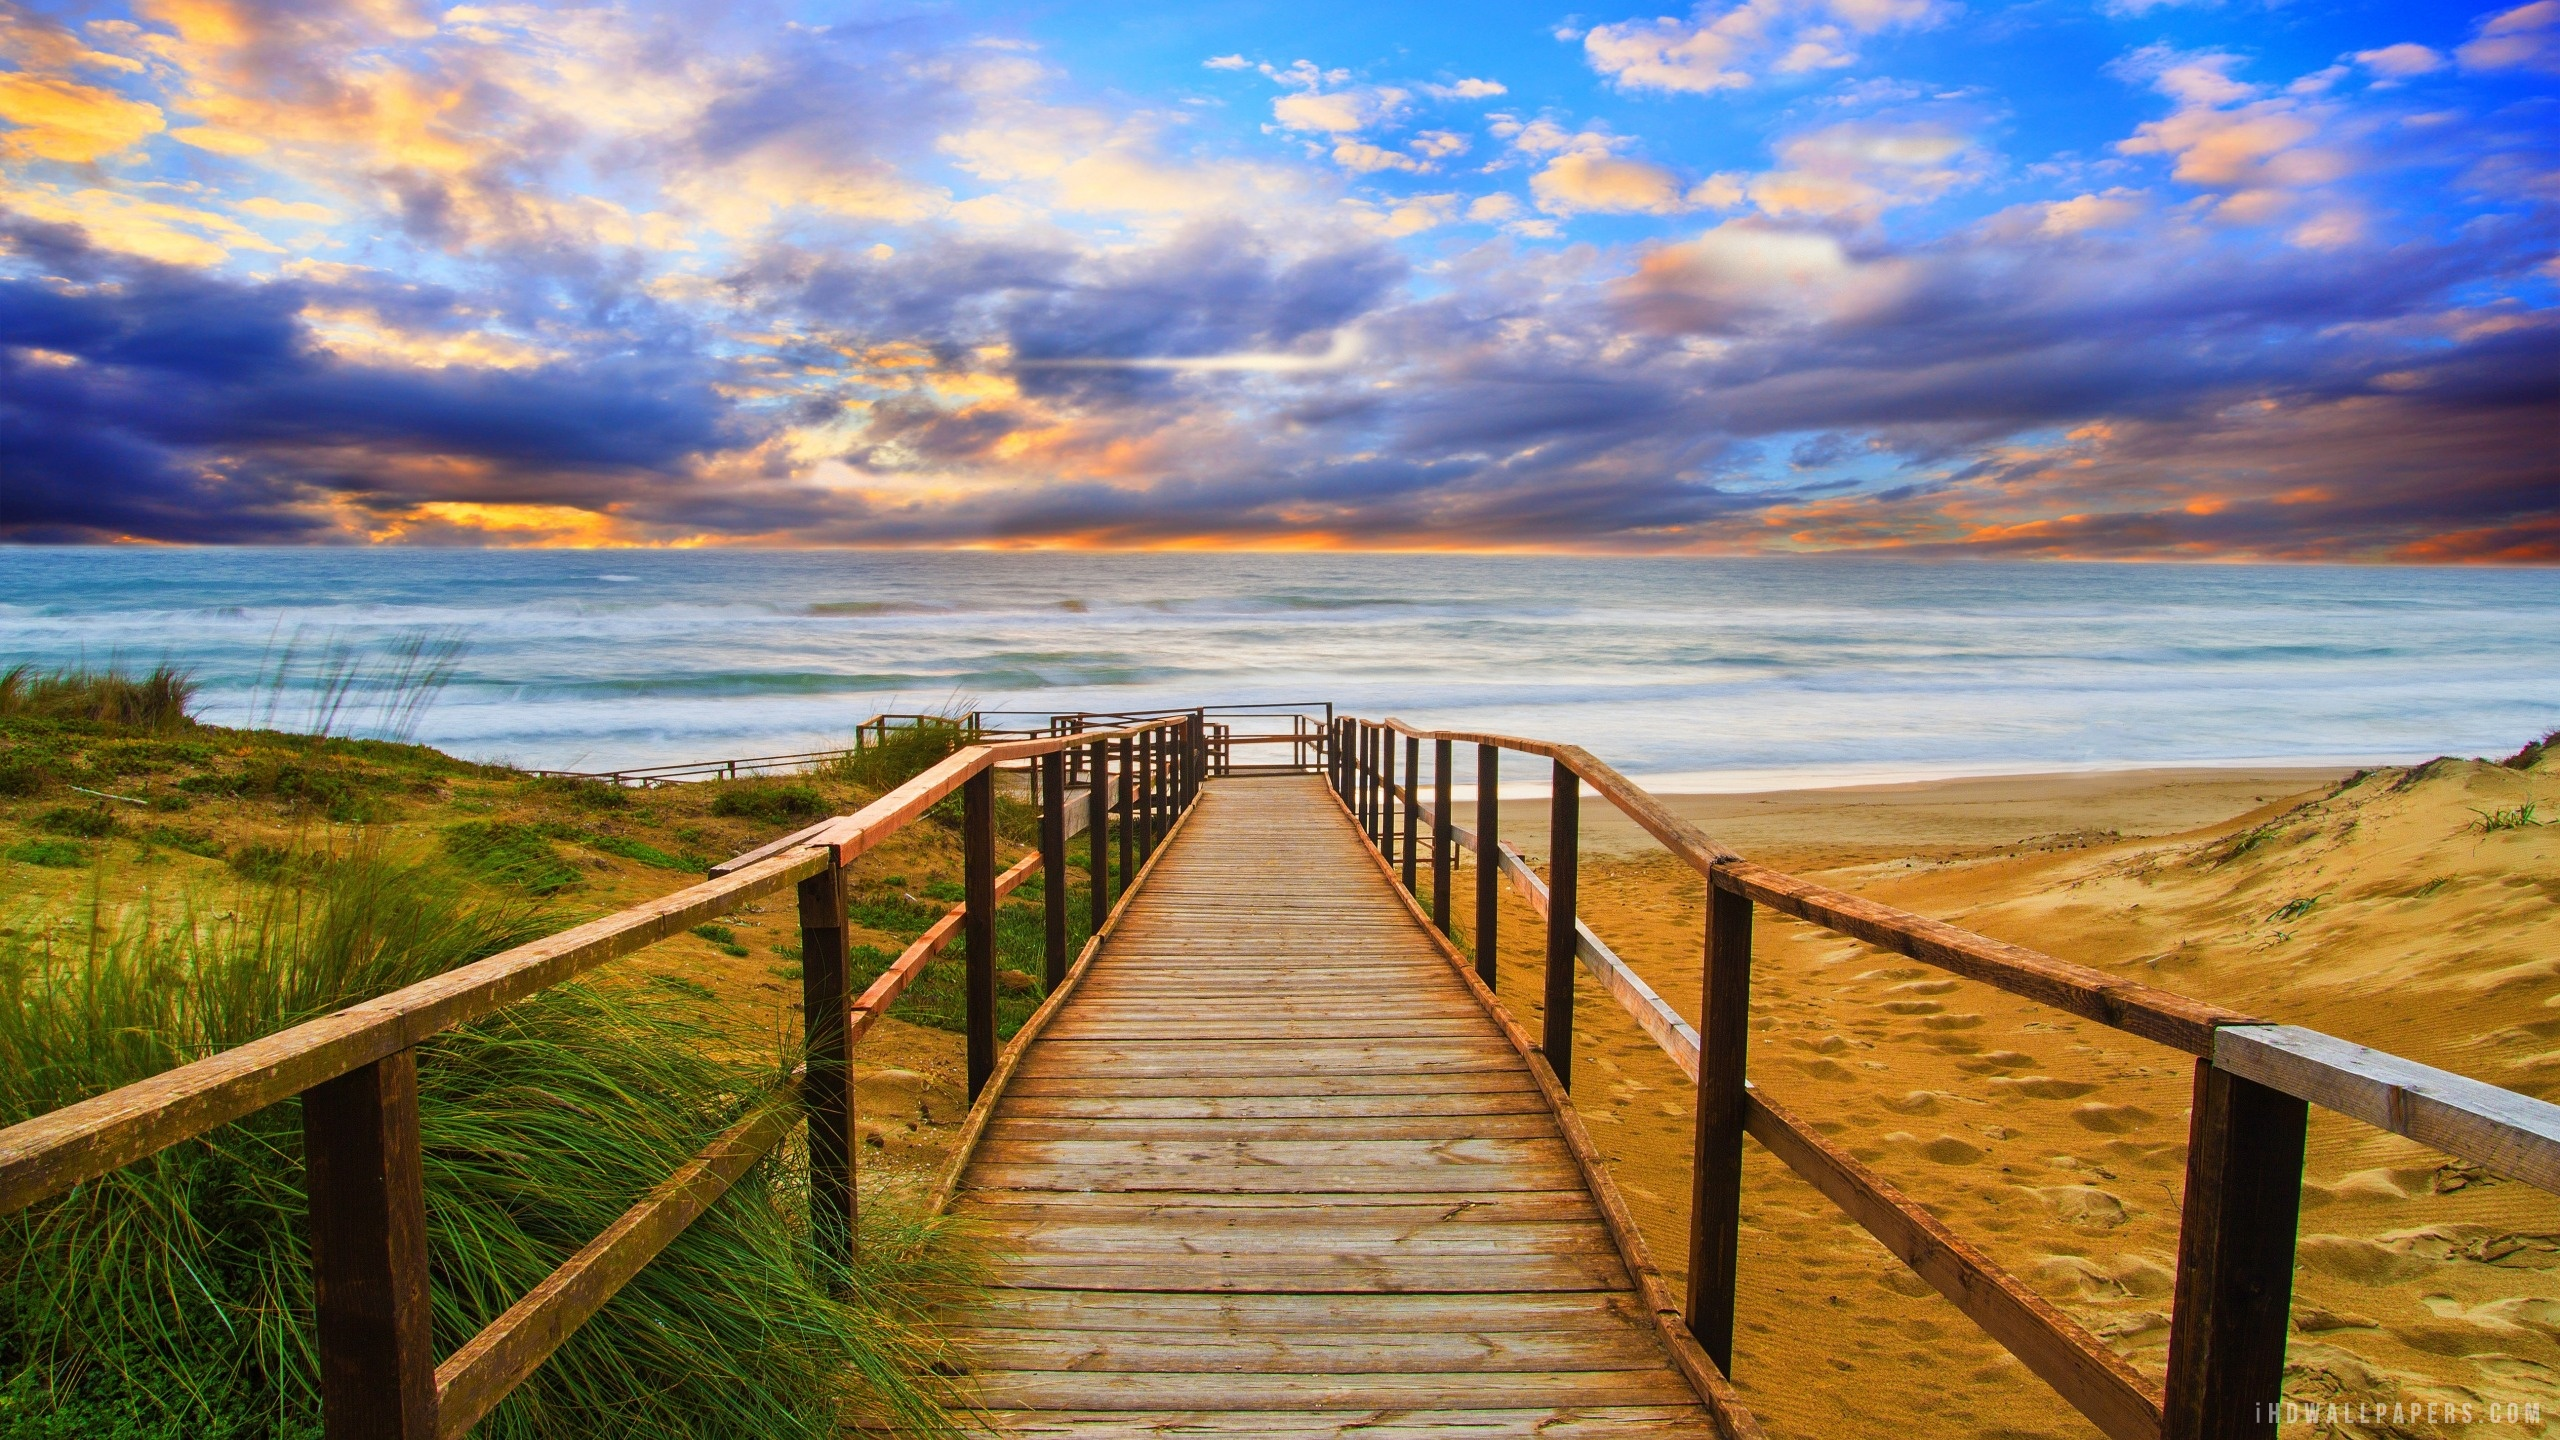 wooden_path_near_ocean-2560x1440